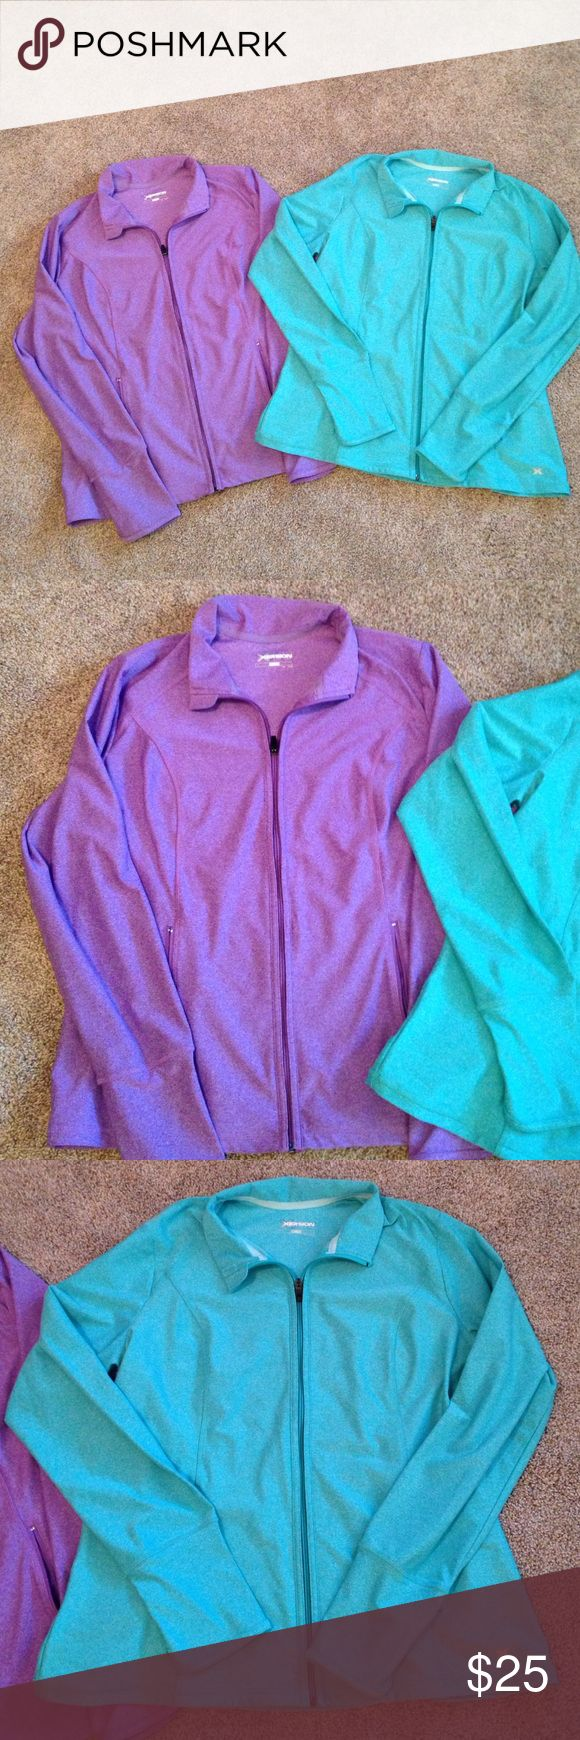 Zip up jackets. One lavender one turquoise Women's zip up jackets. One lavender and one turquoise. Great for casual to the gym or out to eat ice cream great condition! Xersion by JCPenney Jackets & Coats Utility Jackets